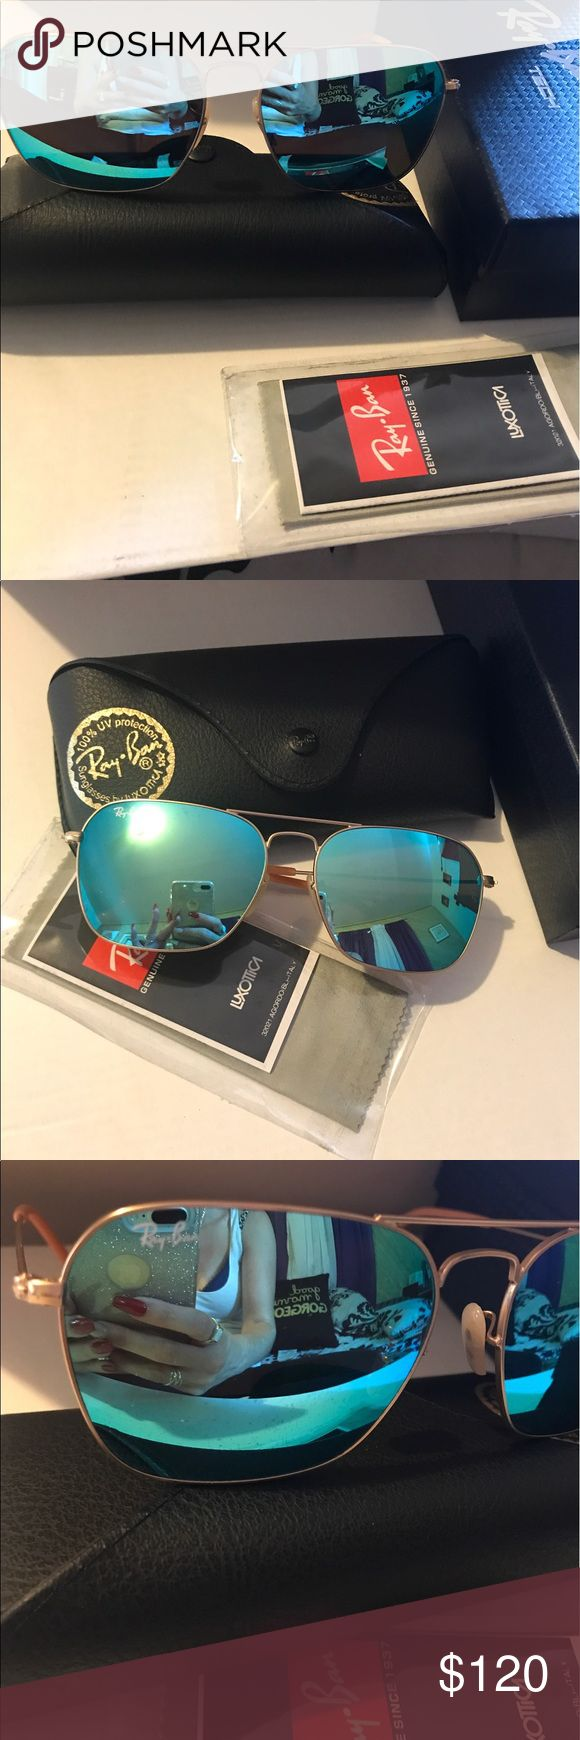 Brand New Ray-Ban Caravan Green Mirror RB 3136 Ray-Ban Caravan Matte Gold Frame / Green Mirror RB 3136 112/19 58mm Medium, Glasses include leather case and cleaning cloth. 100% Authentic Ray-Ban Accessories Sunglasses